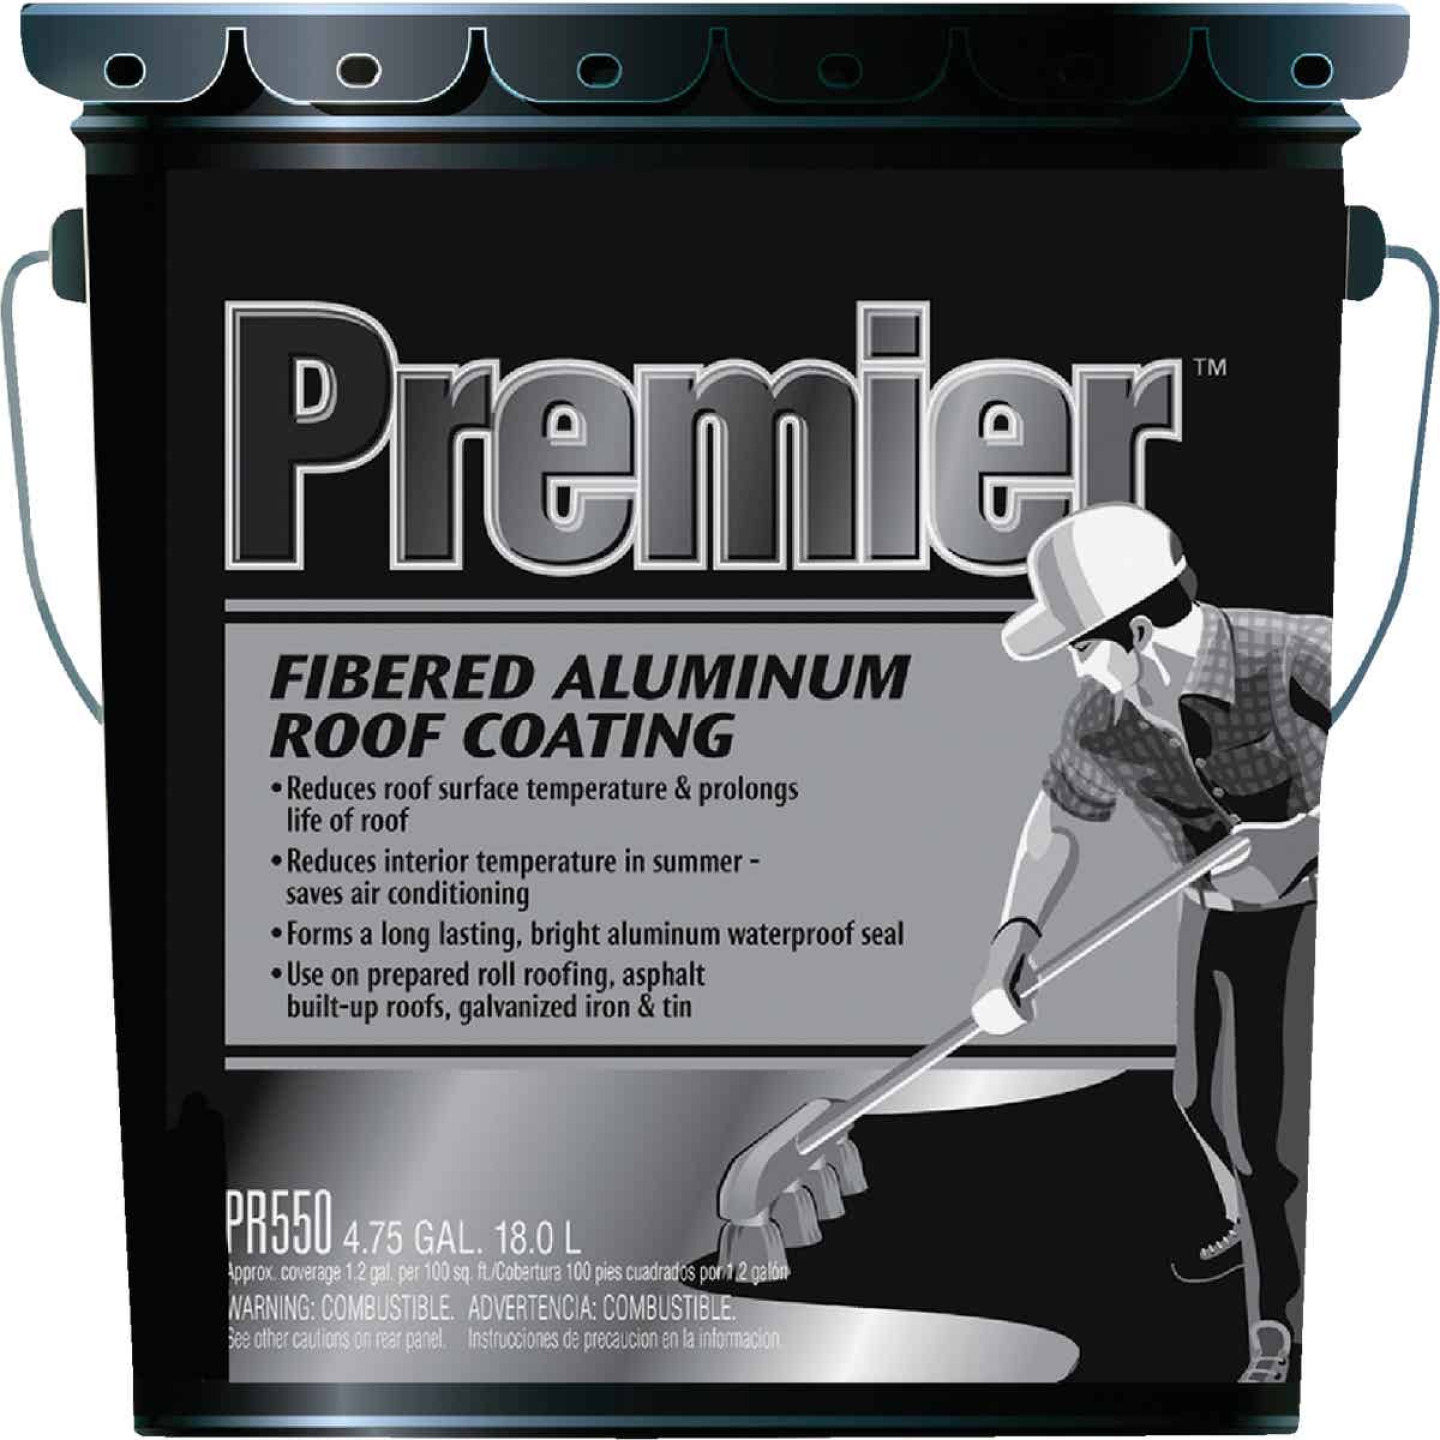 Premier 5 Gal. Fibered Aluminum Roof Coating Image 1